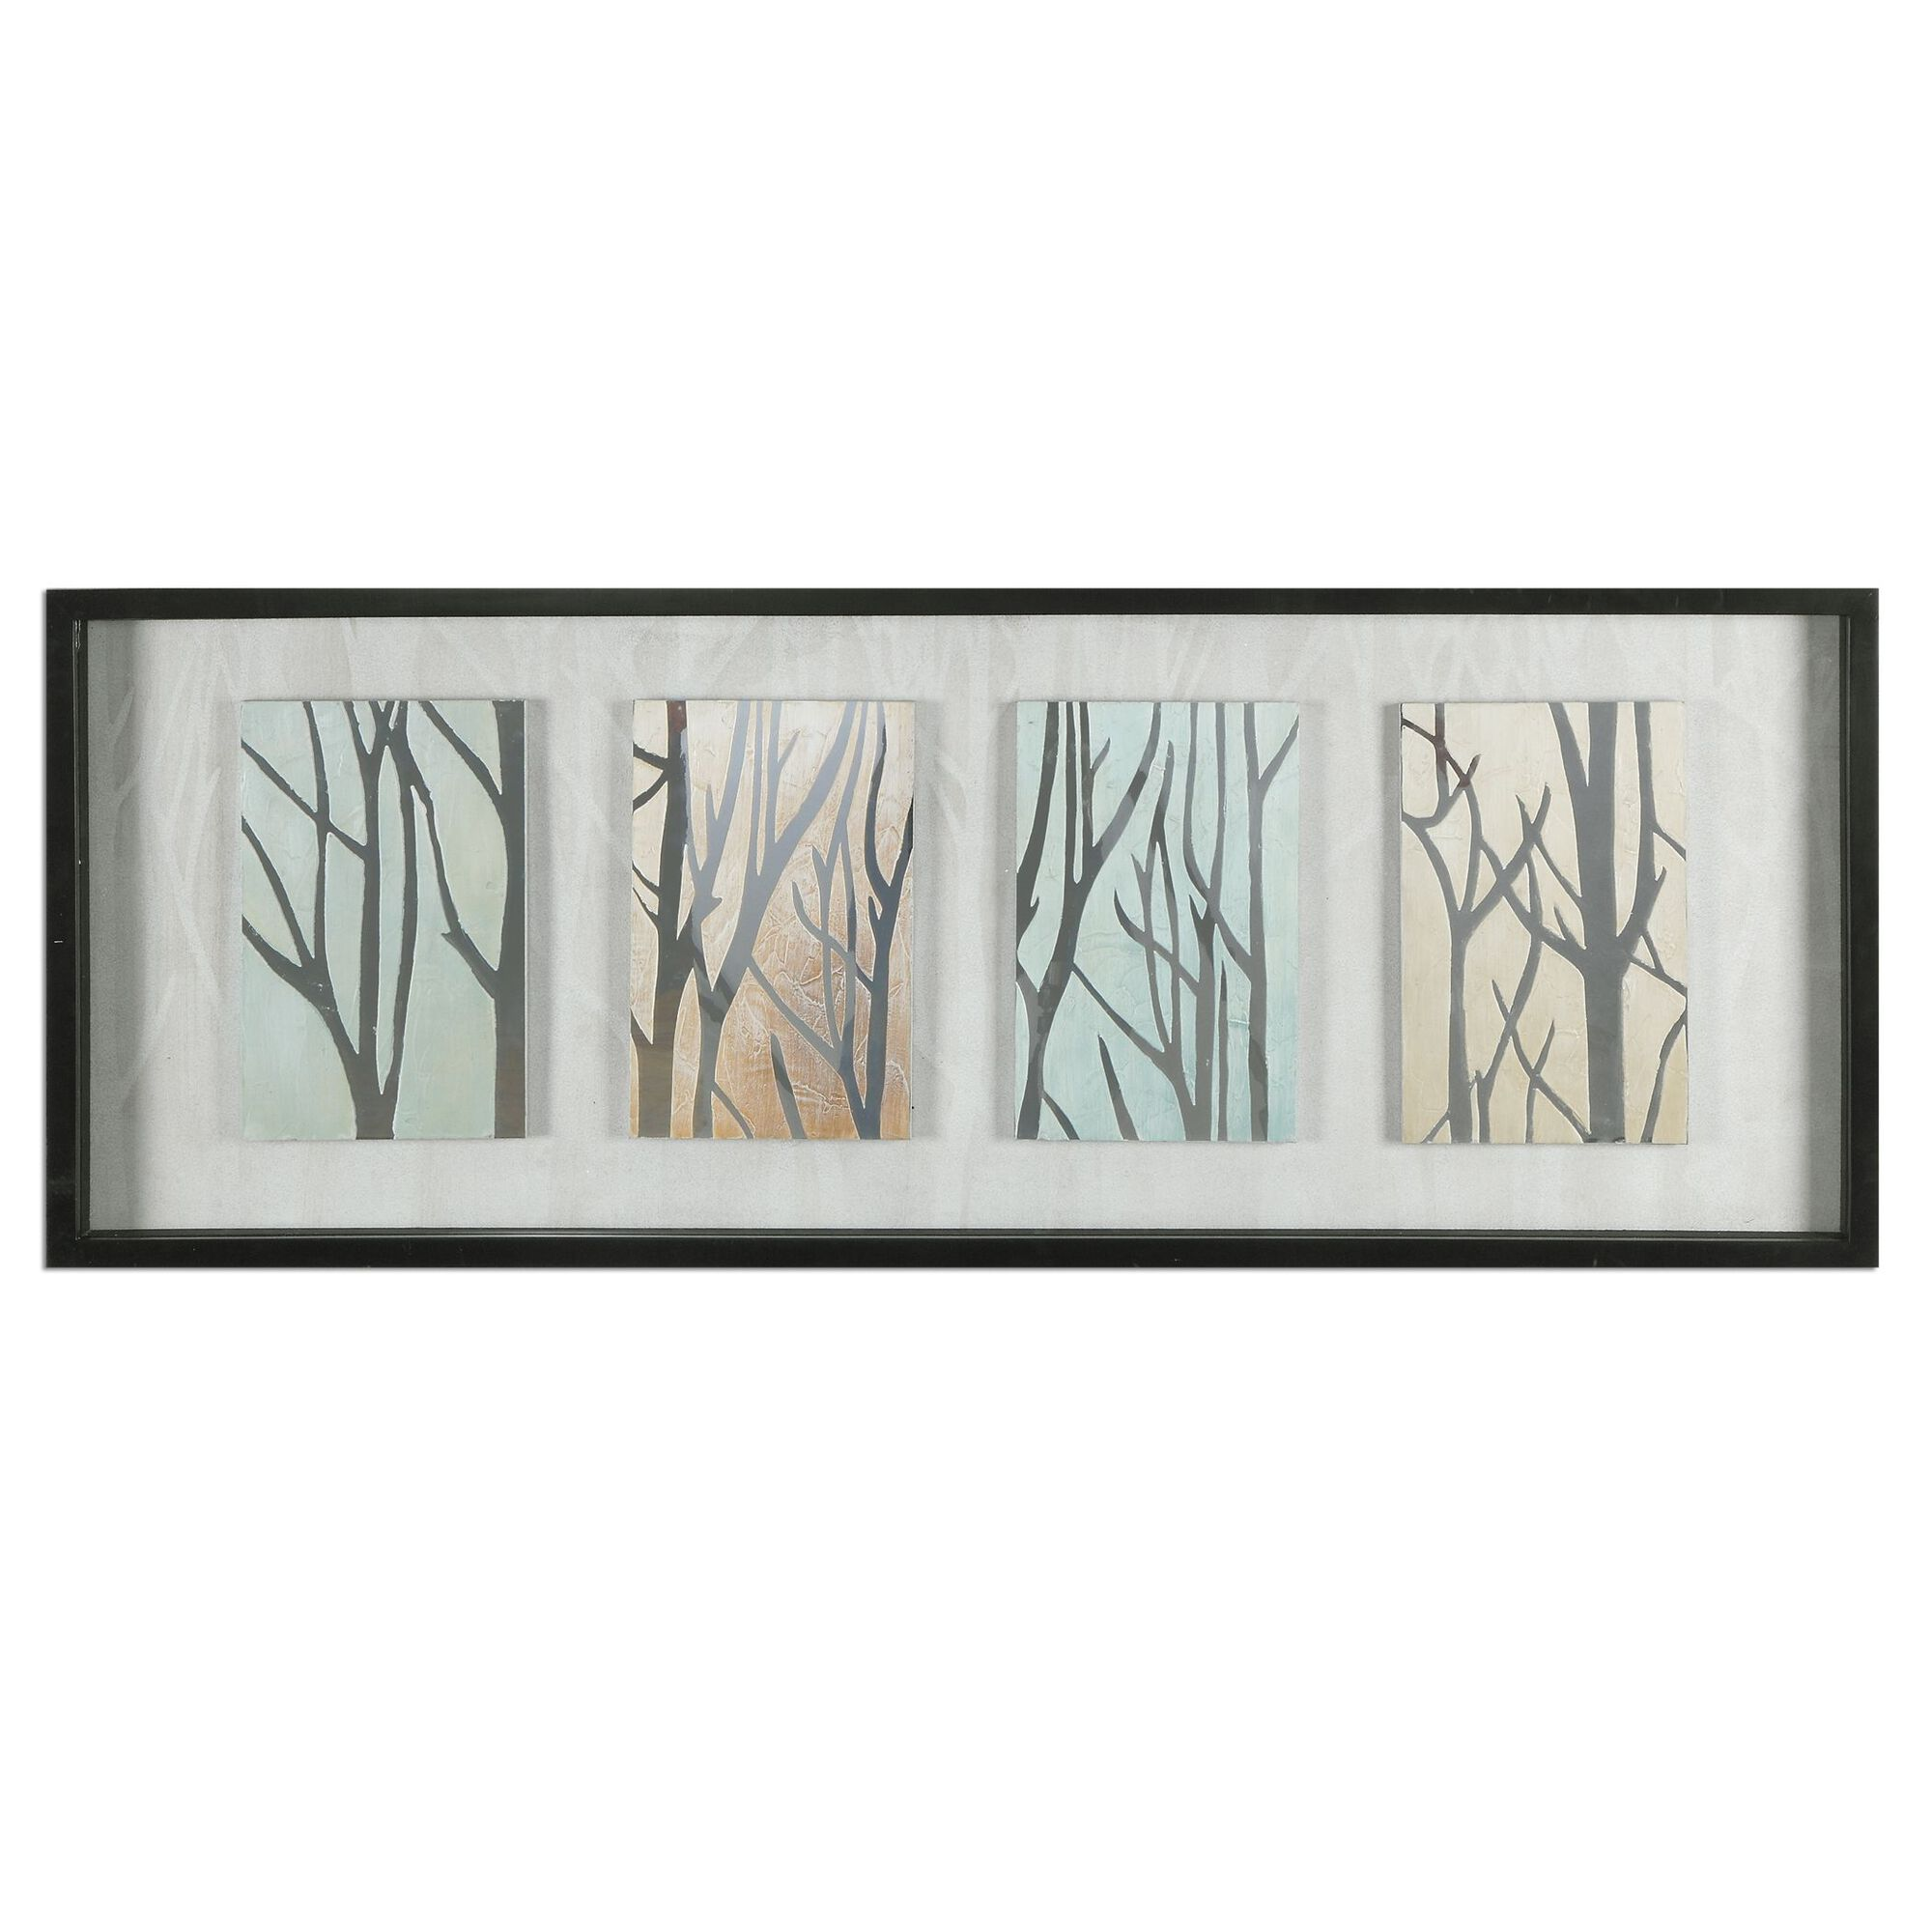 Framed Tree Trunks Shadow Box Display Wall Art | Mathis Brothers ...